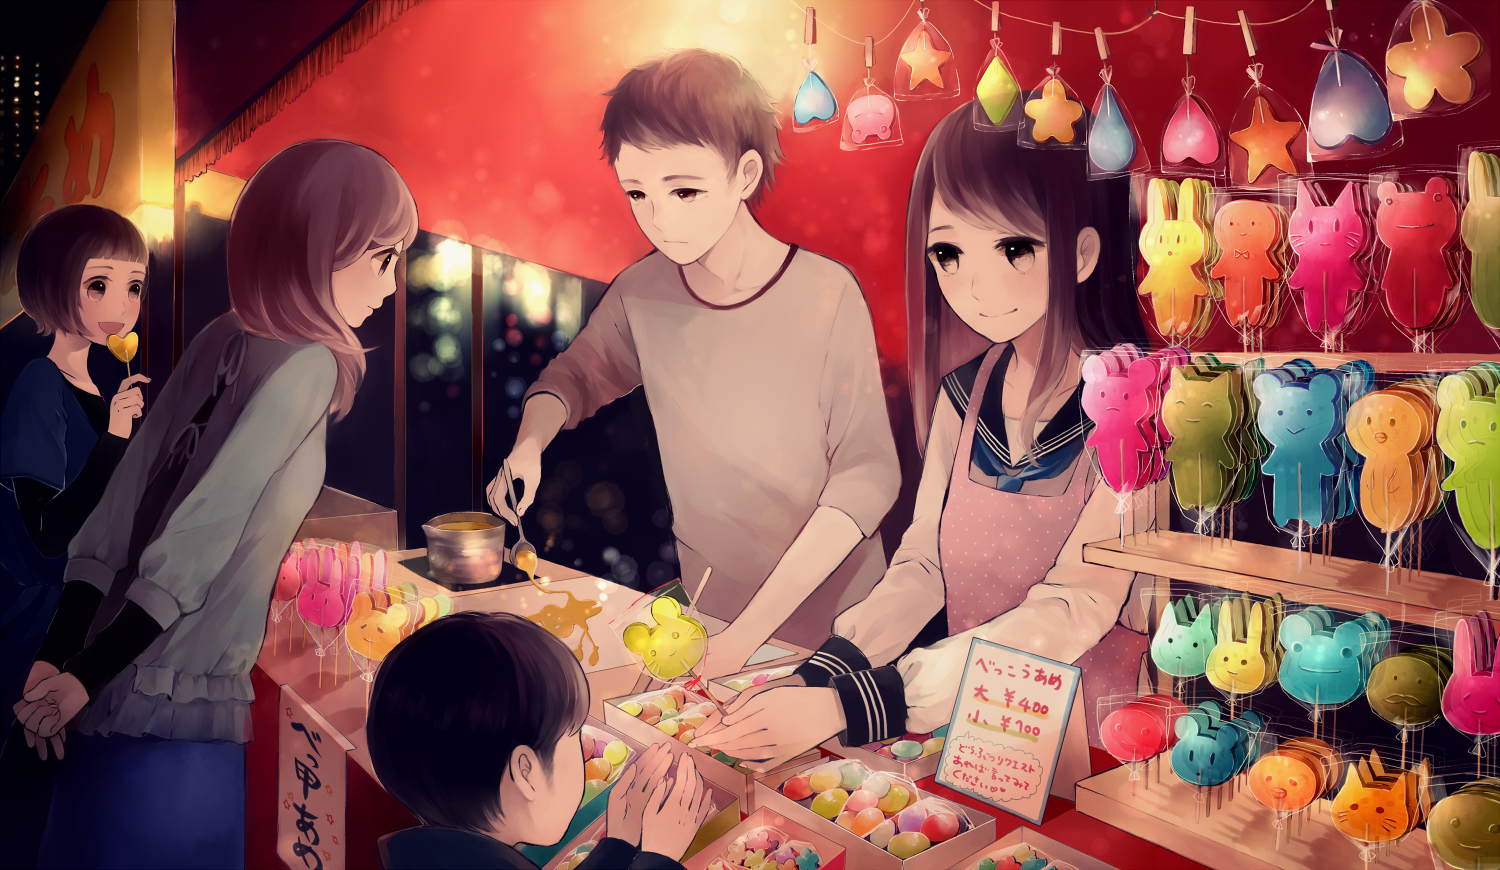 Anime Girls And Anime Boys With Candy Traditional Japanese Festival Carnival Anime Anime Boy Awesome Anime